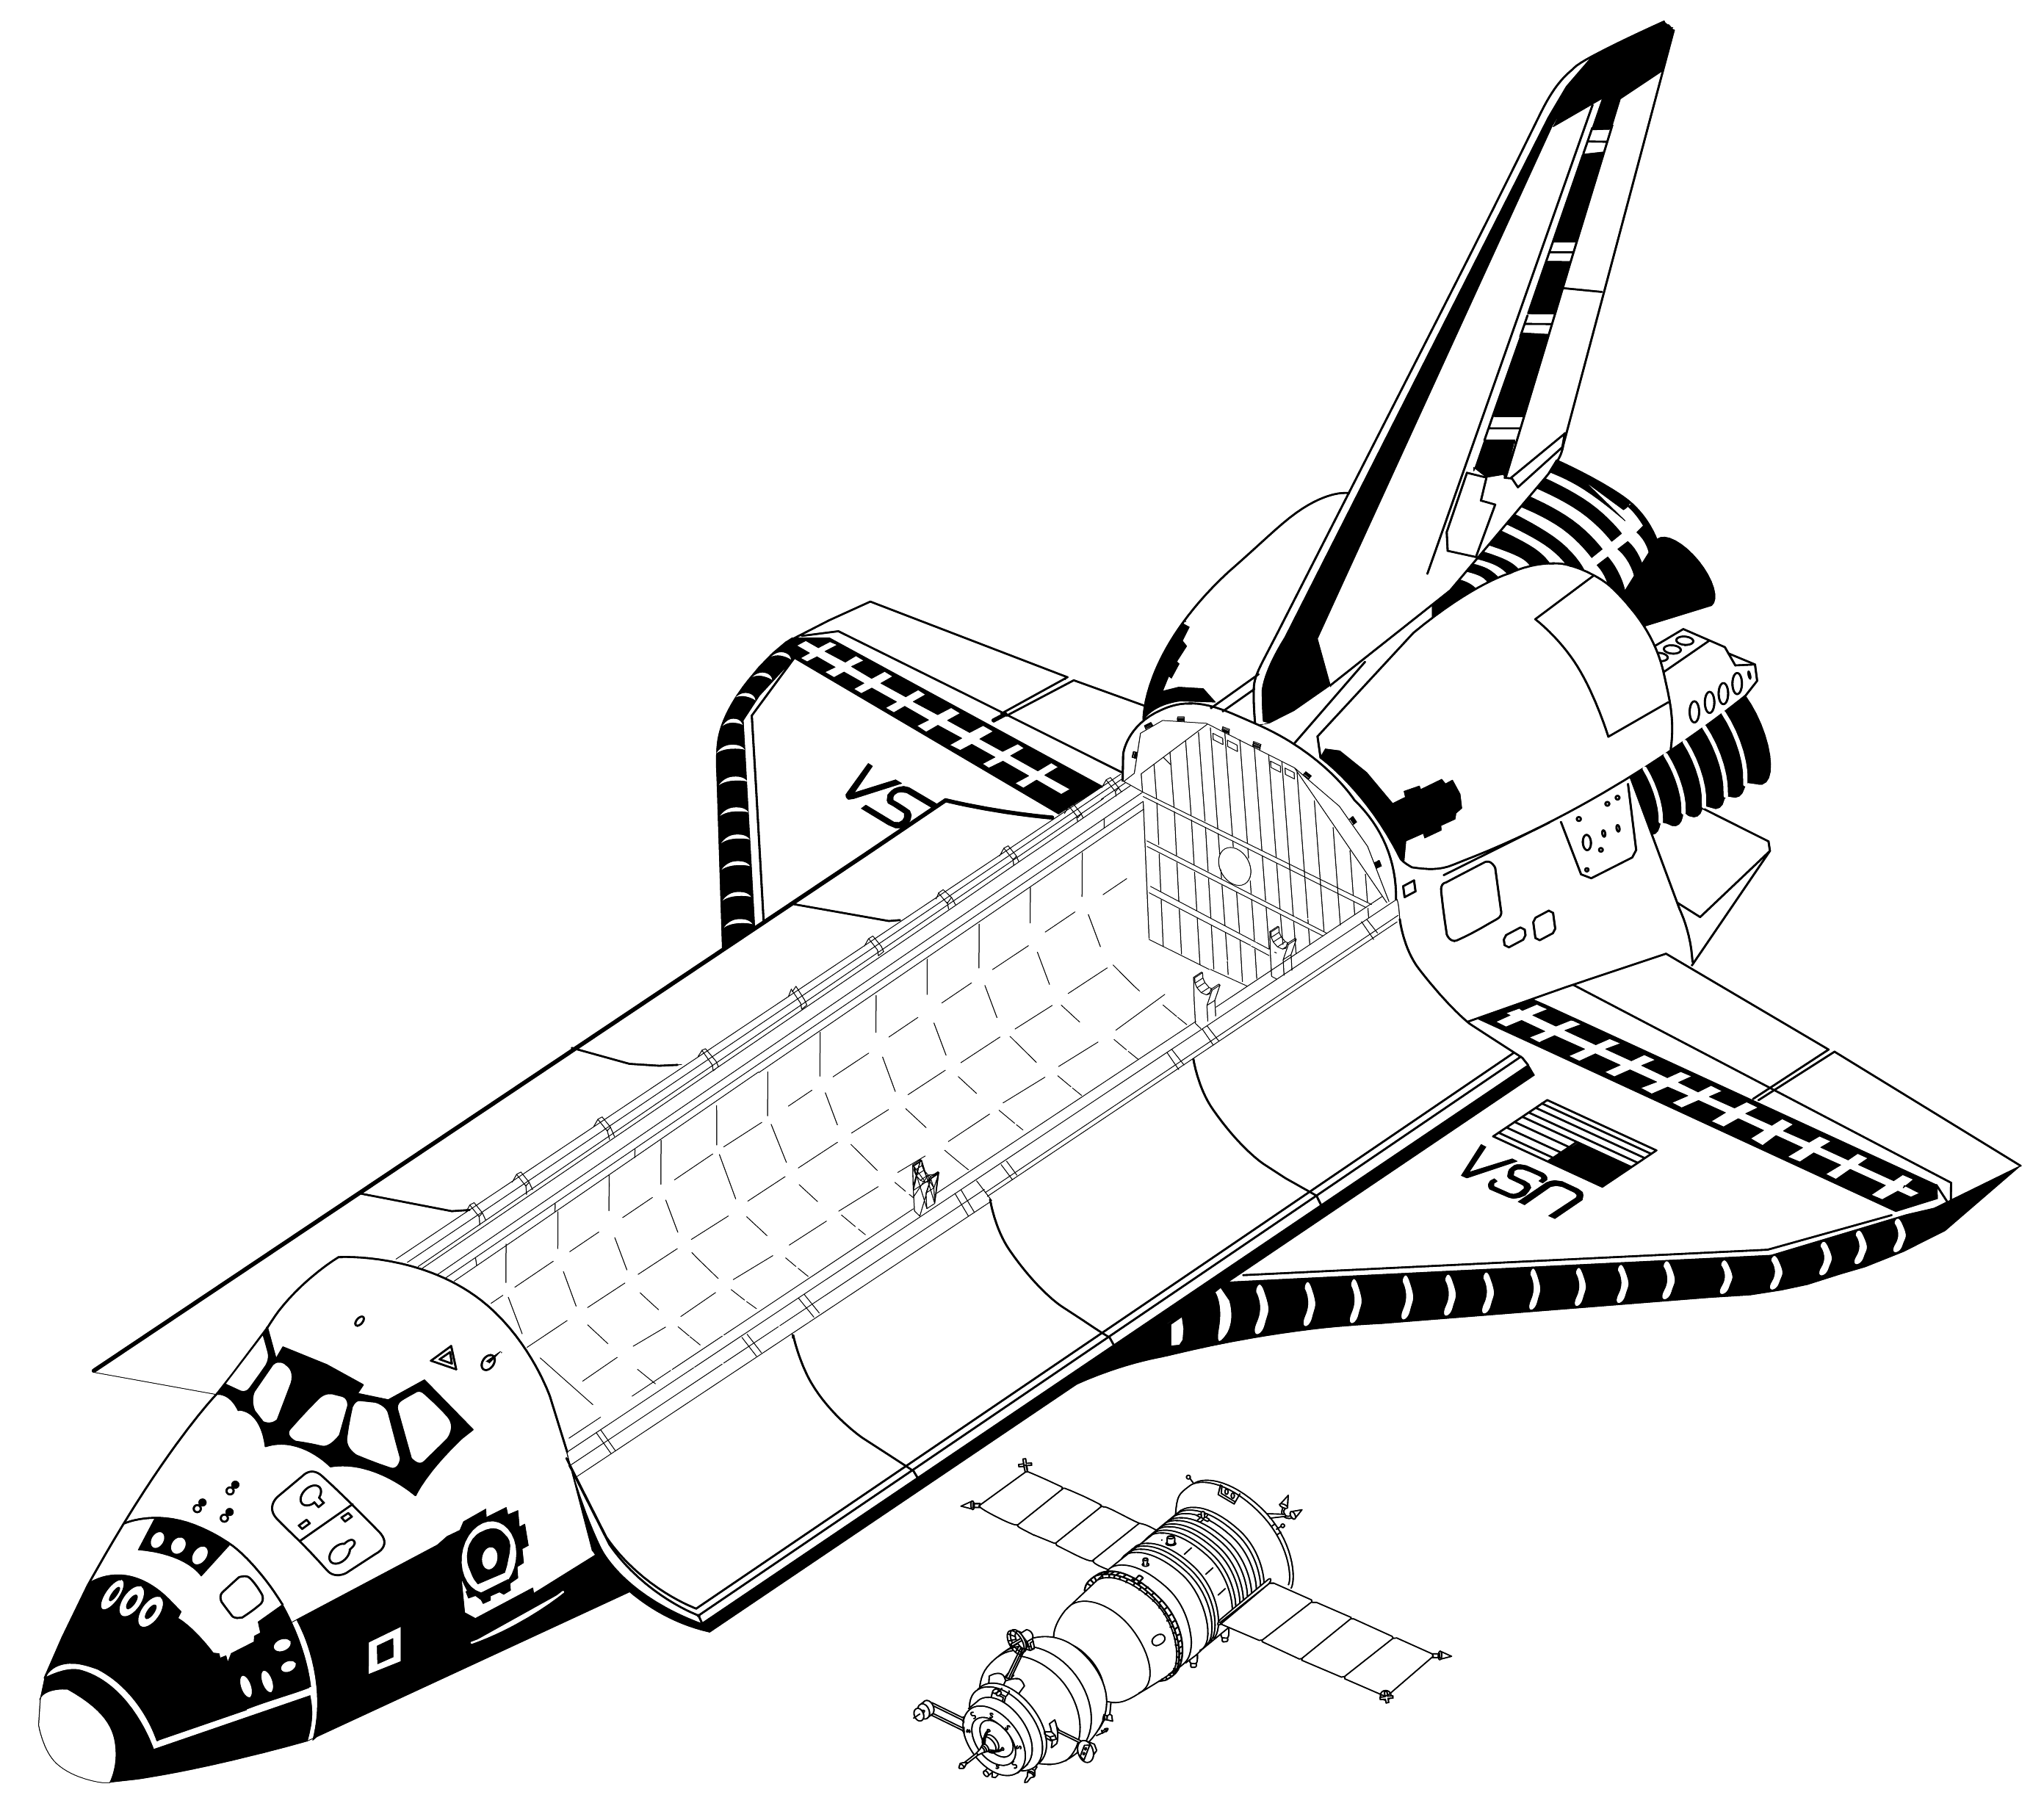 space shuttle drawing hd pictures 4 hd wallpapers colur ful rh pinterest com